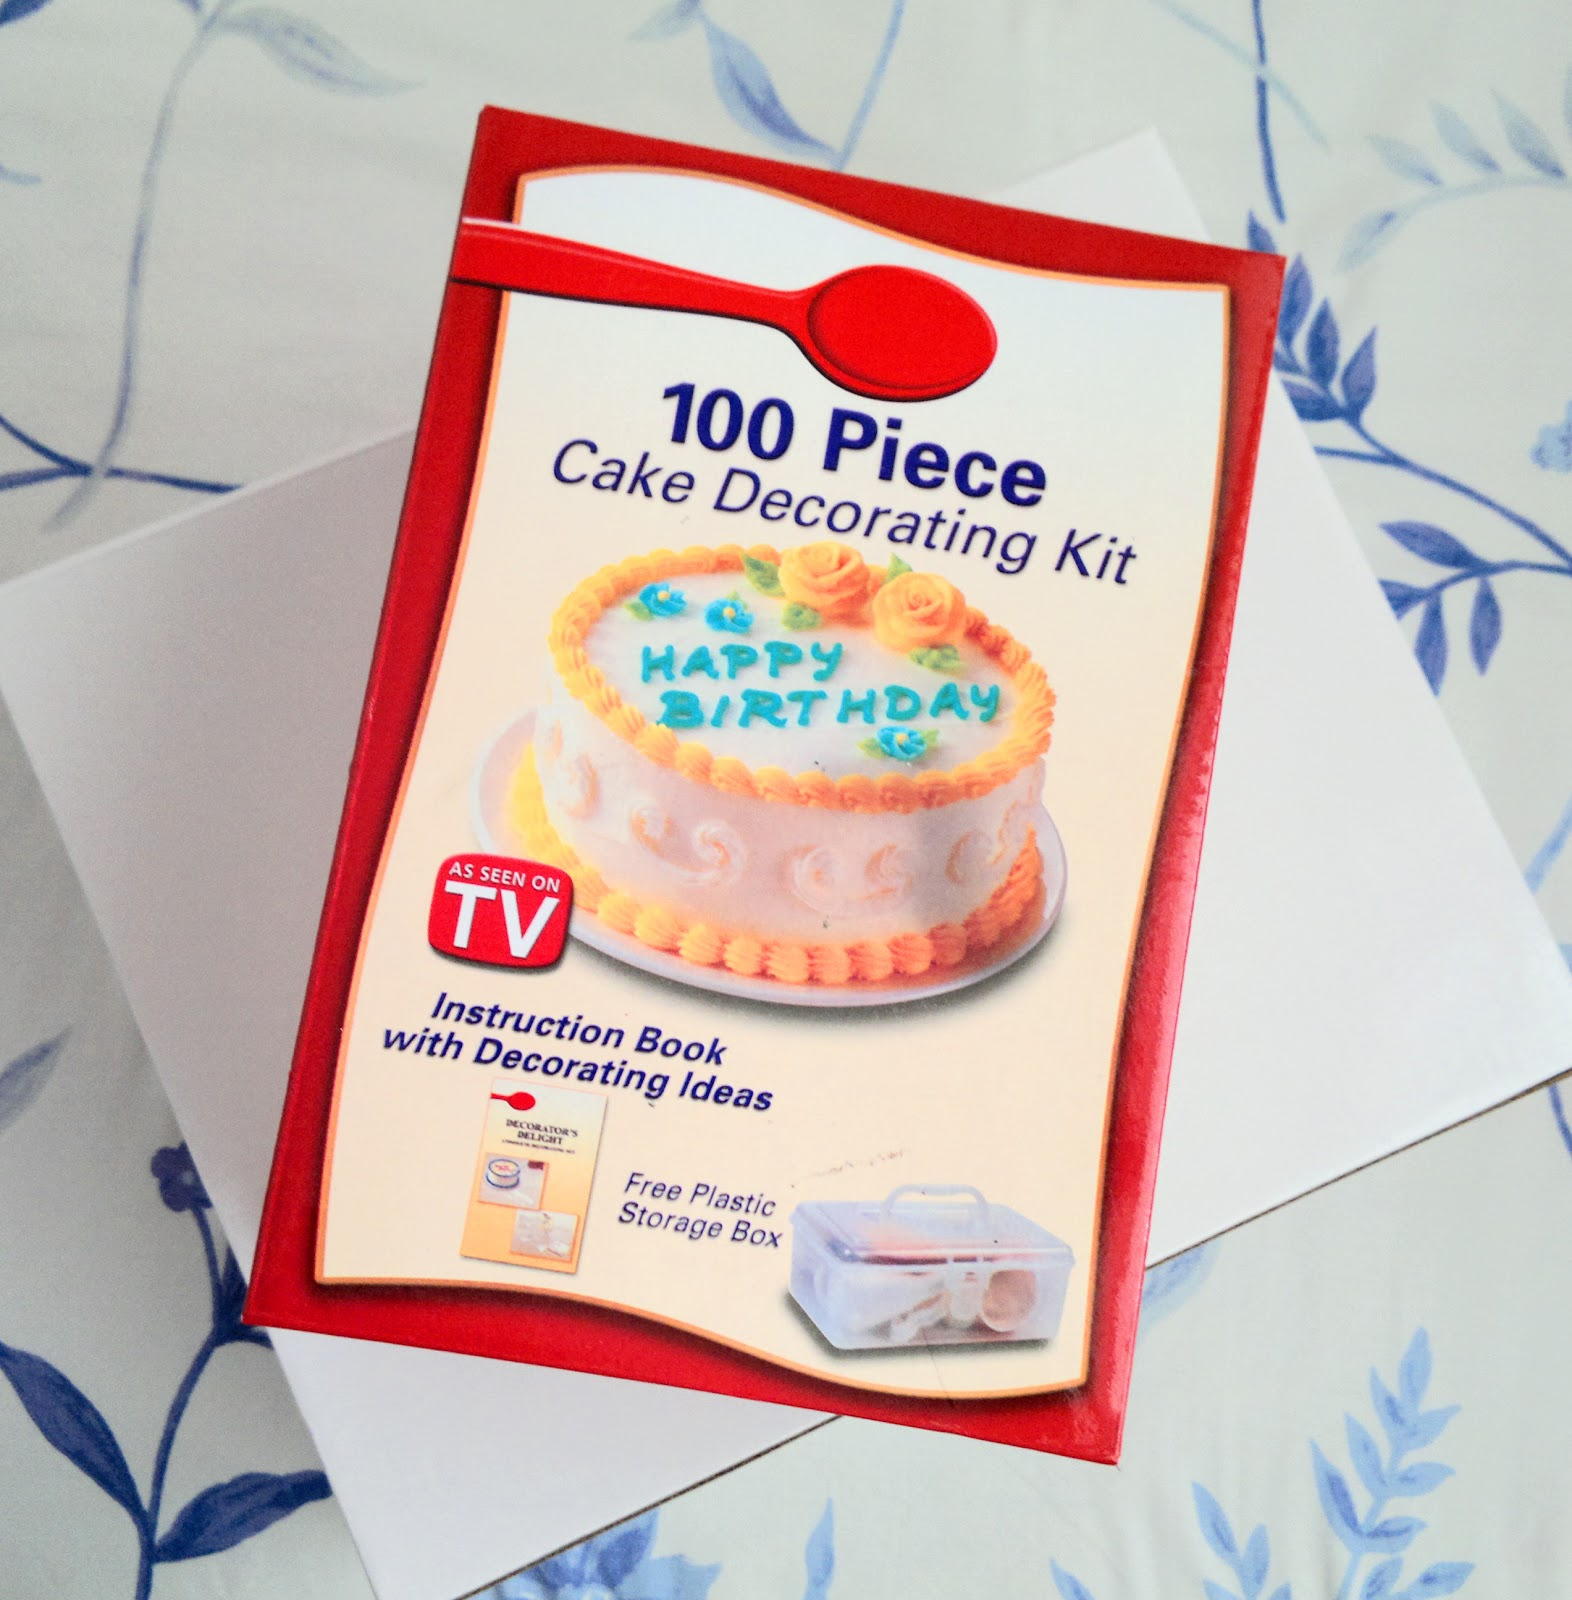 Cake Decorating Kit Groupon : Mille Feuille: Online Post Christmas Shopping